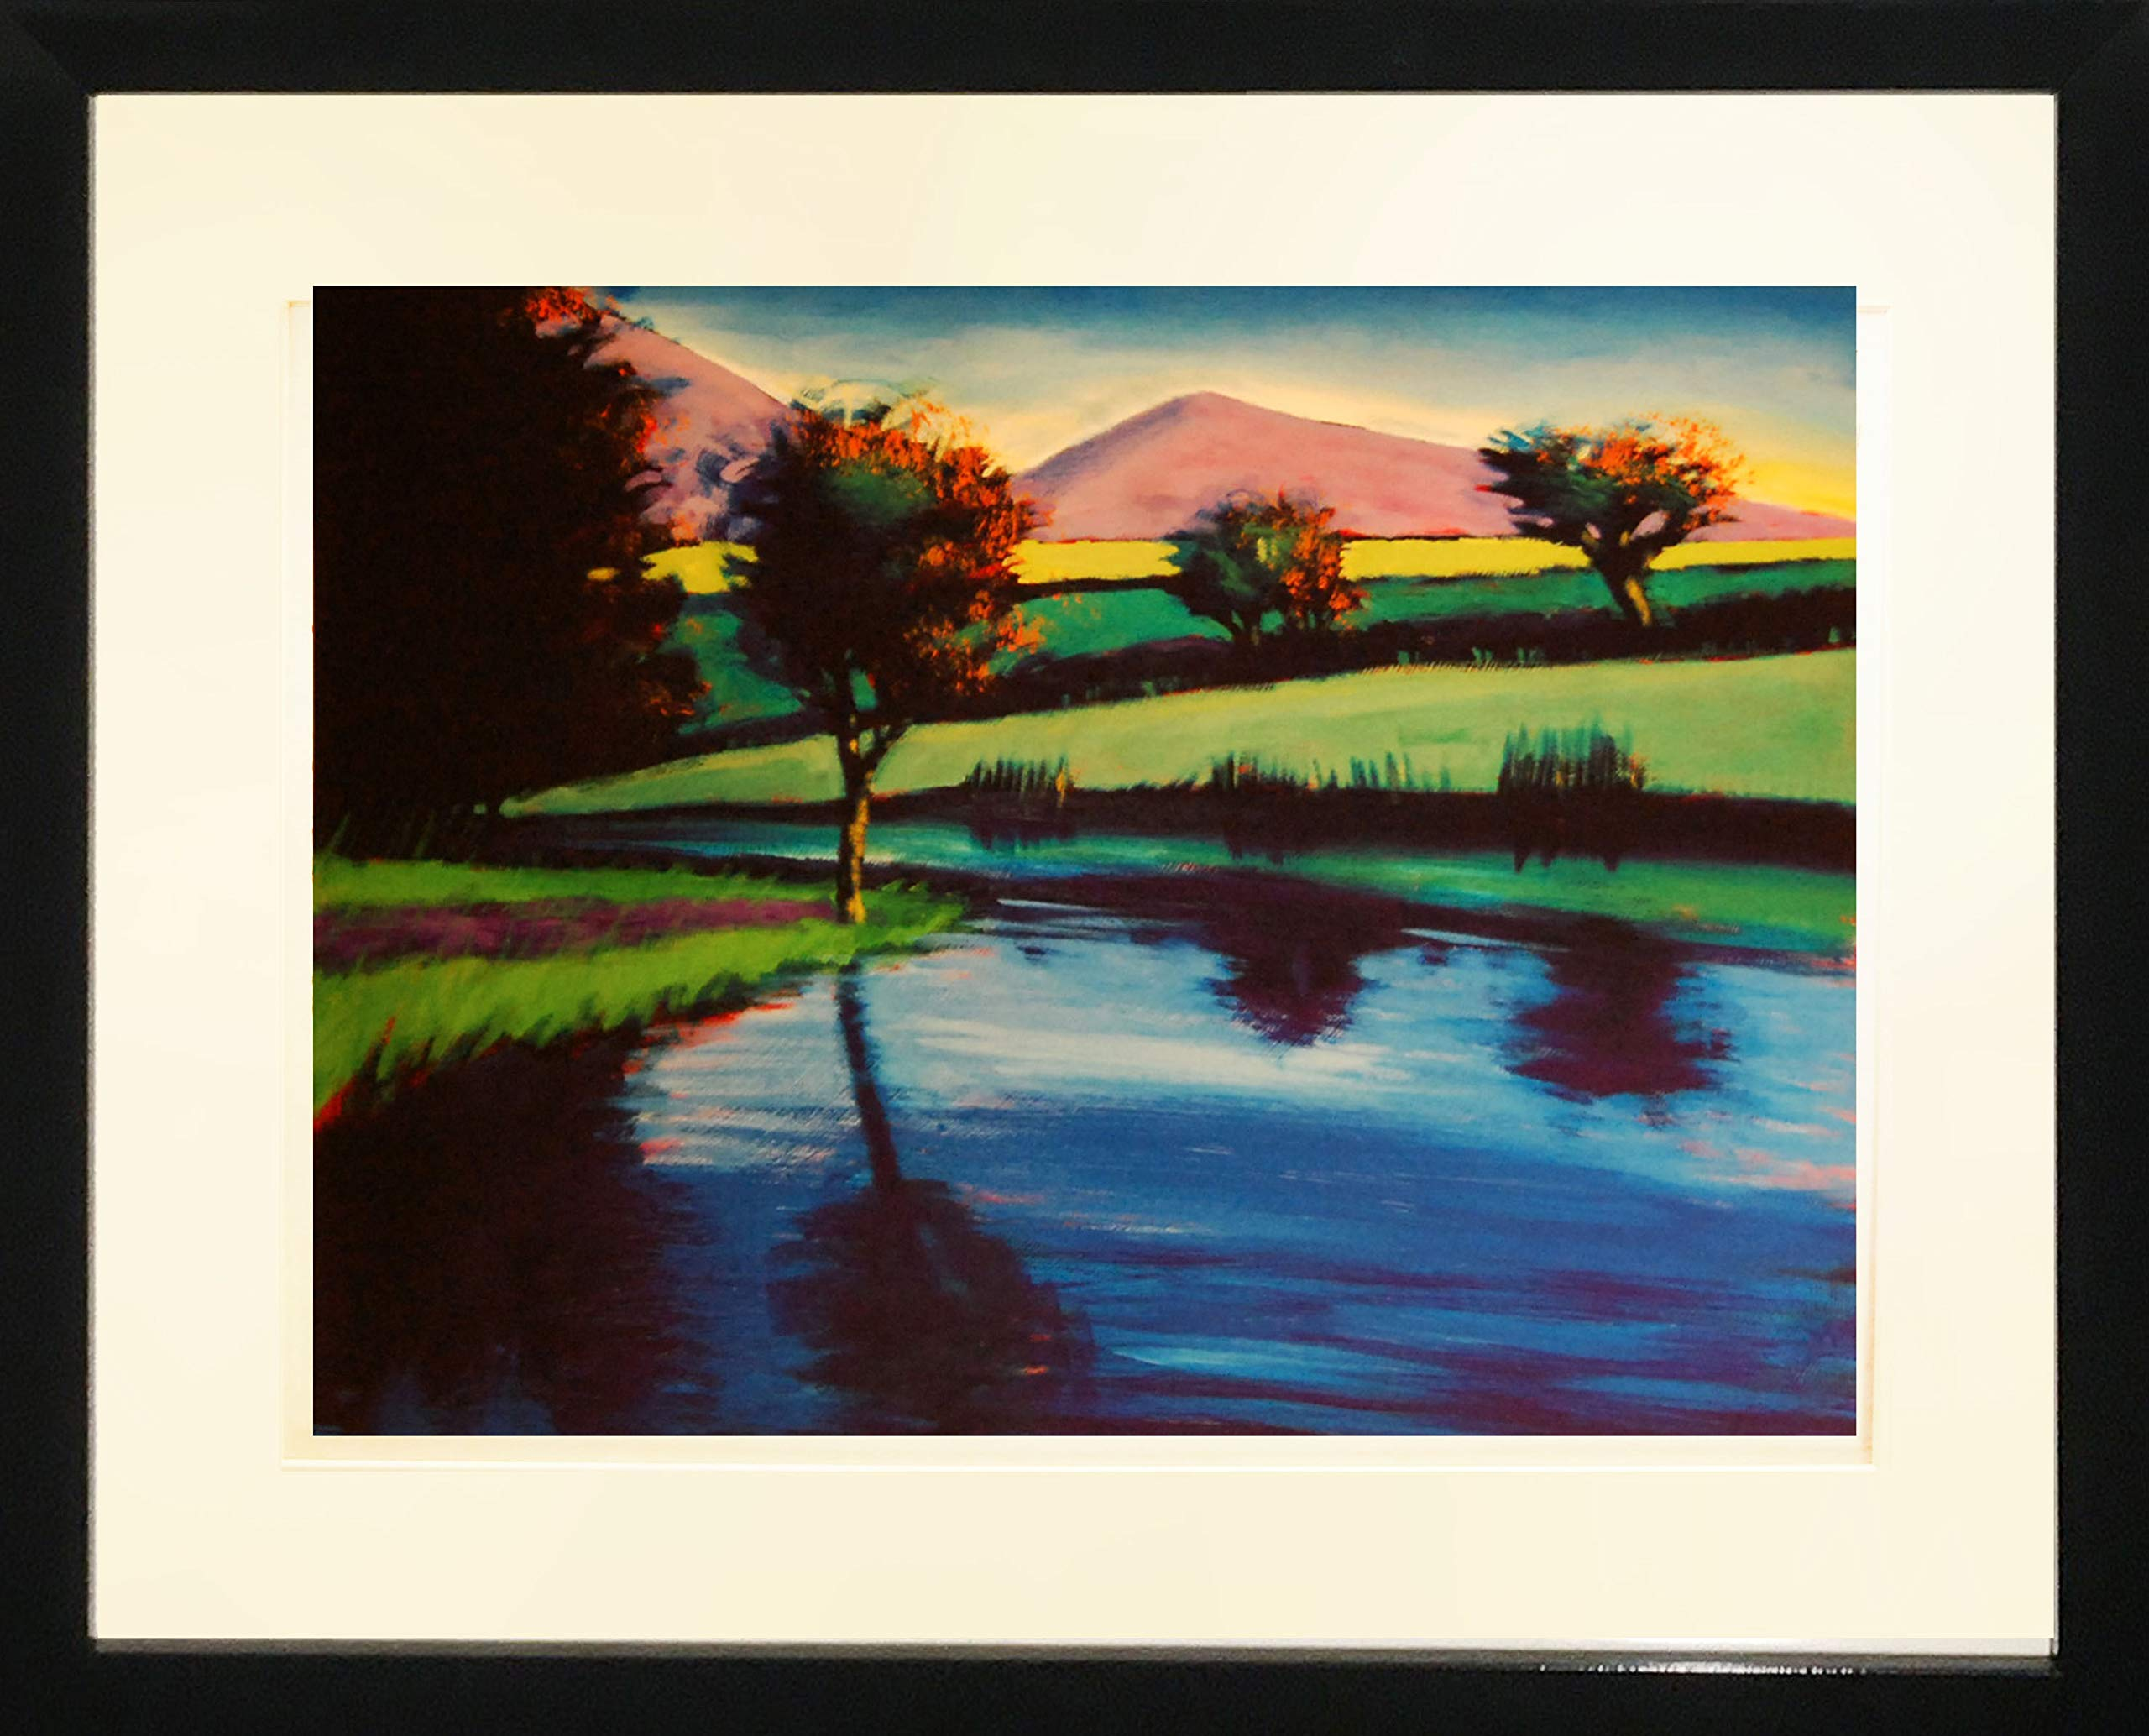 Framed Art''Blue River I'' by Paul Powis by